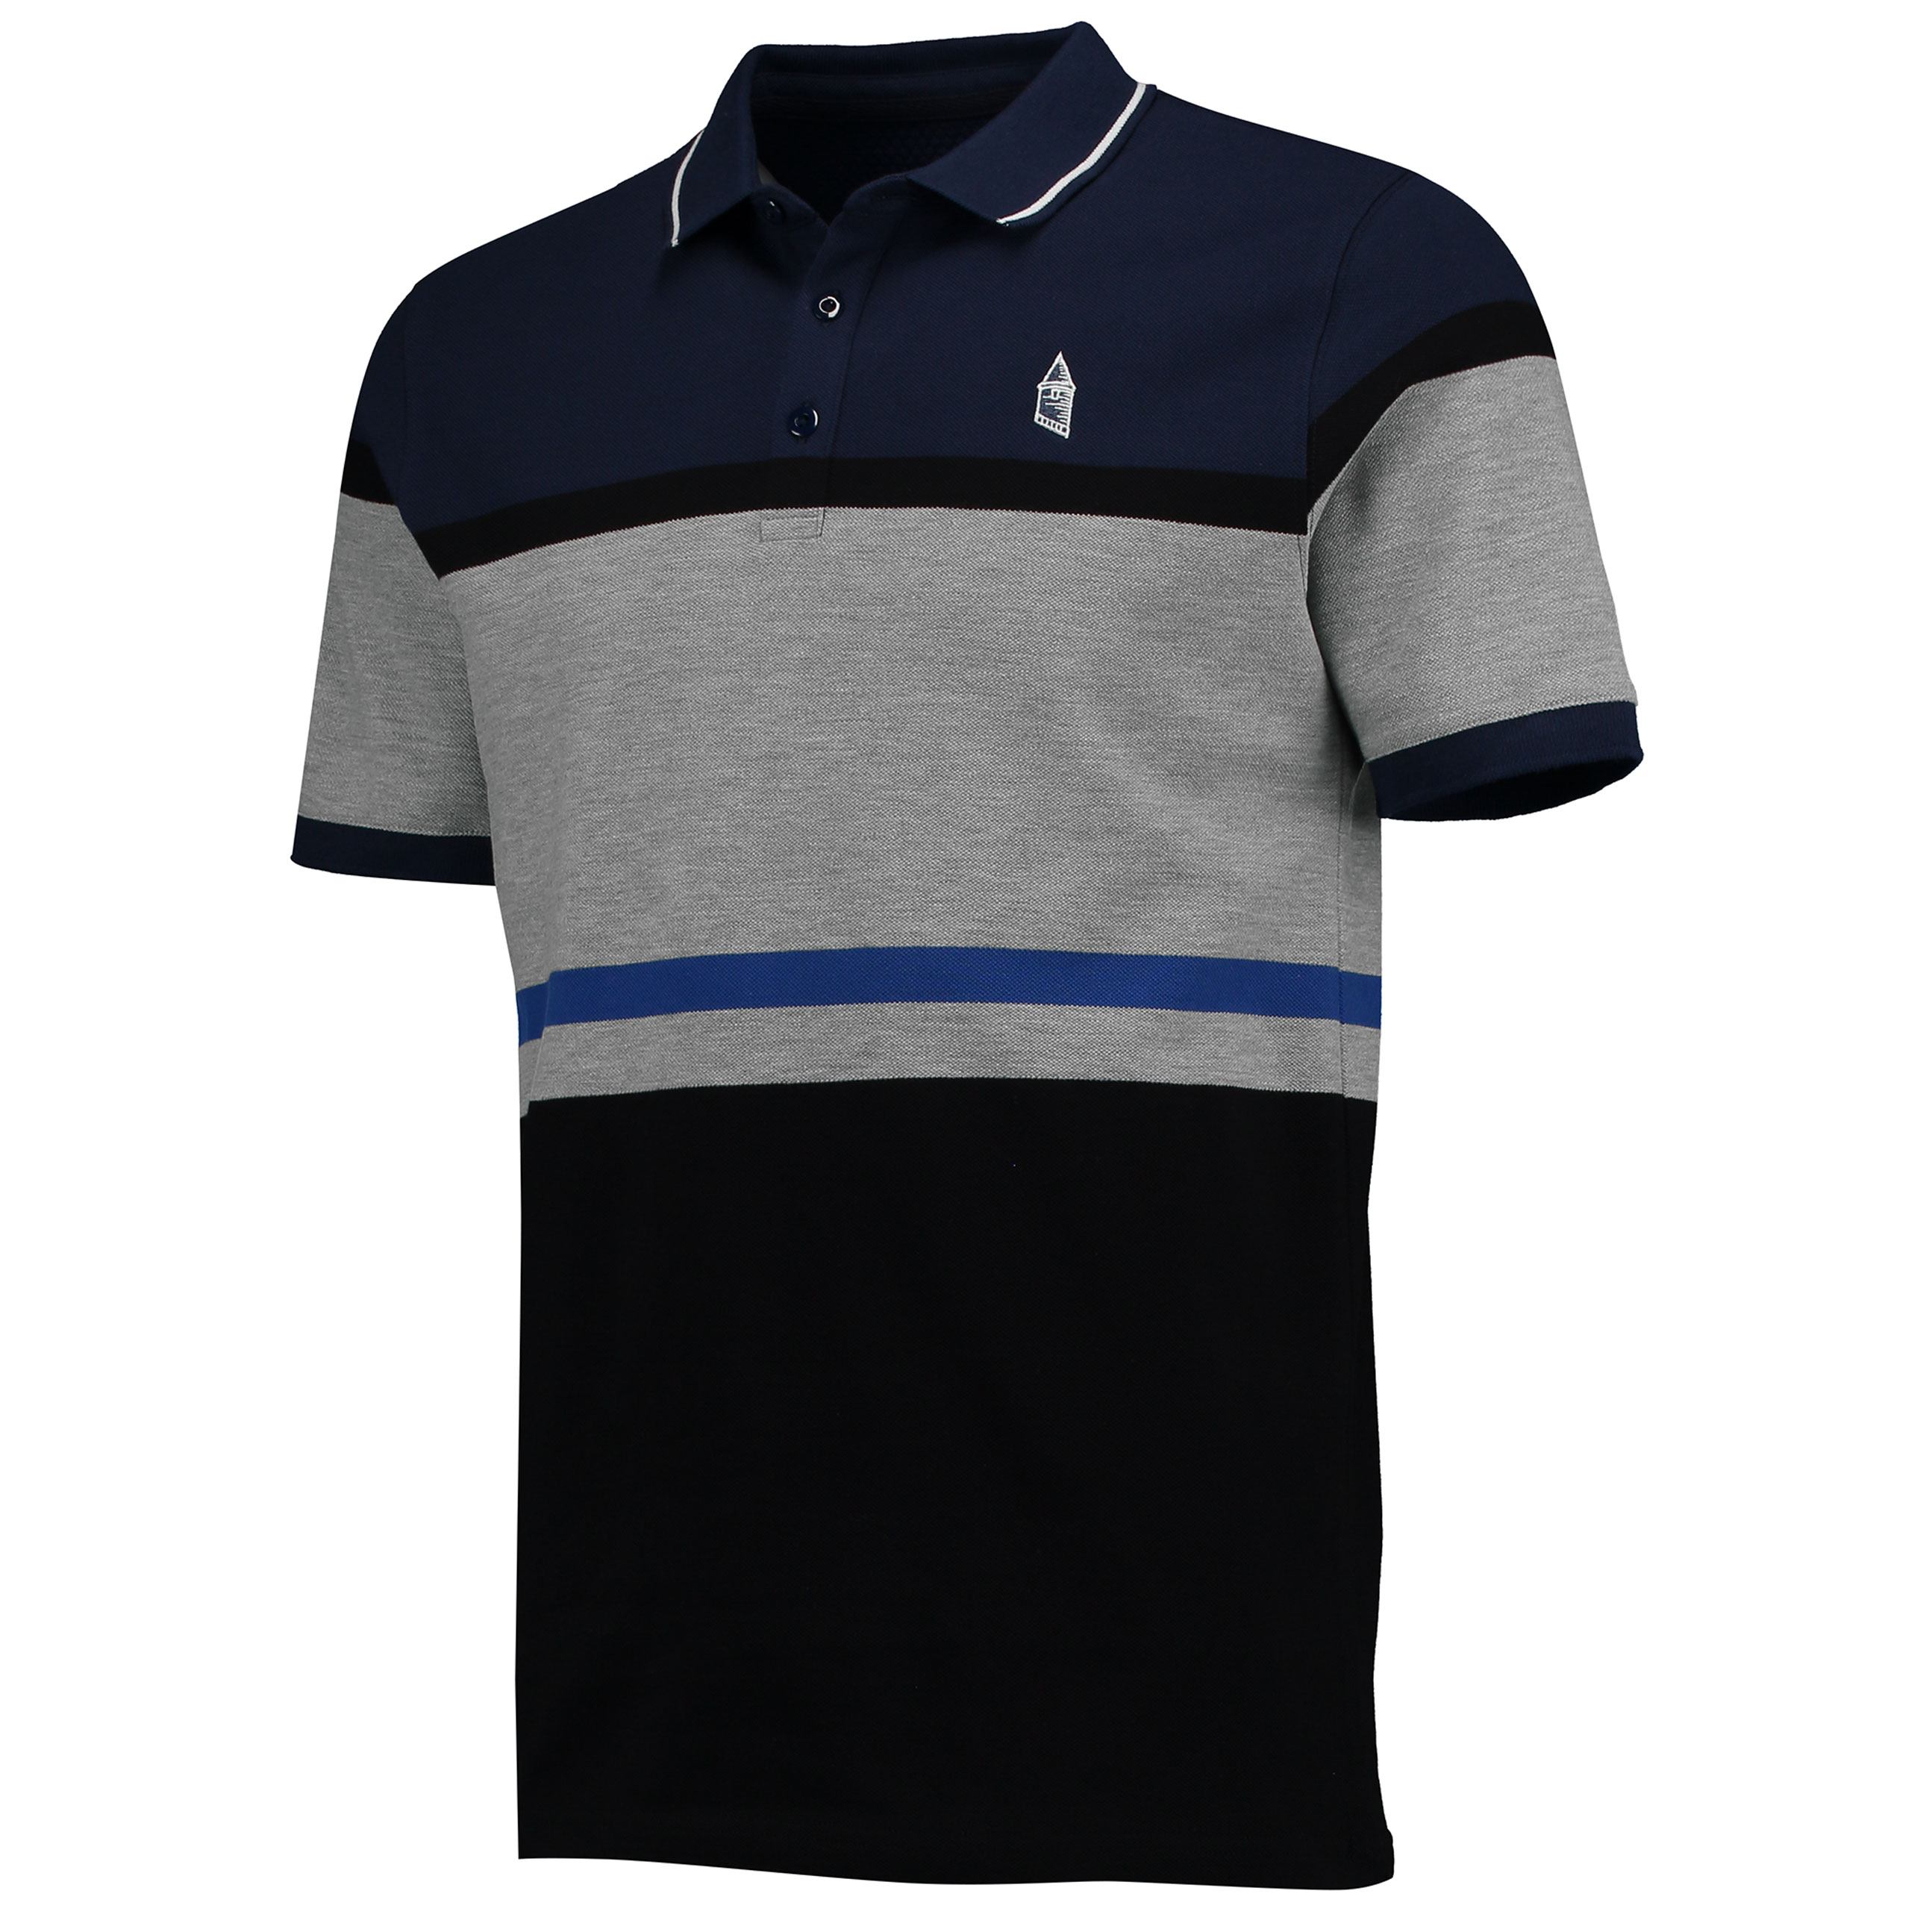 Everton Terrace Polo - Black/Navy/Grey